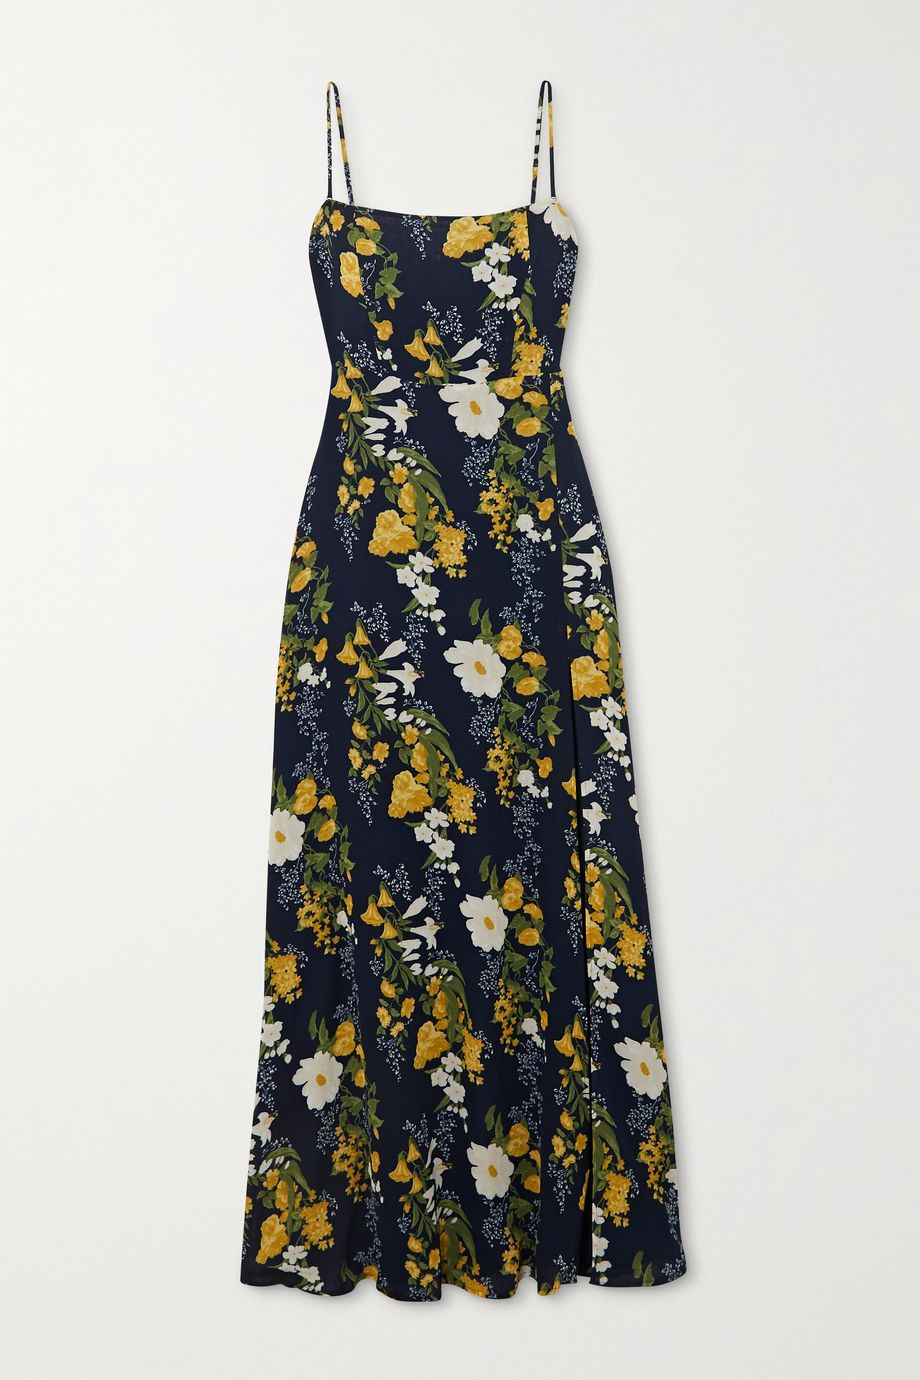 Reformation + NET SUSTAIN Ingrid floral-print georgette maxi dress